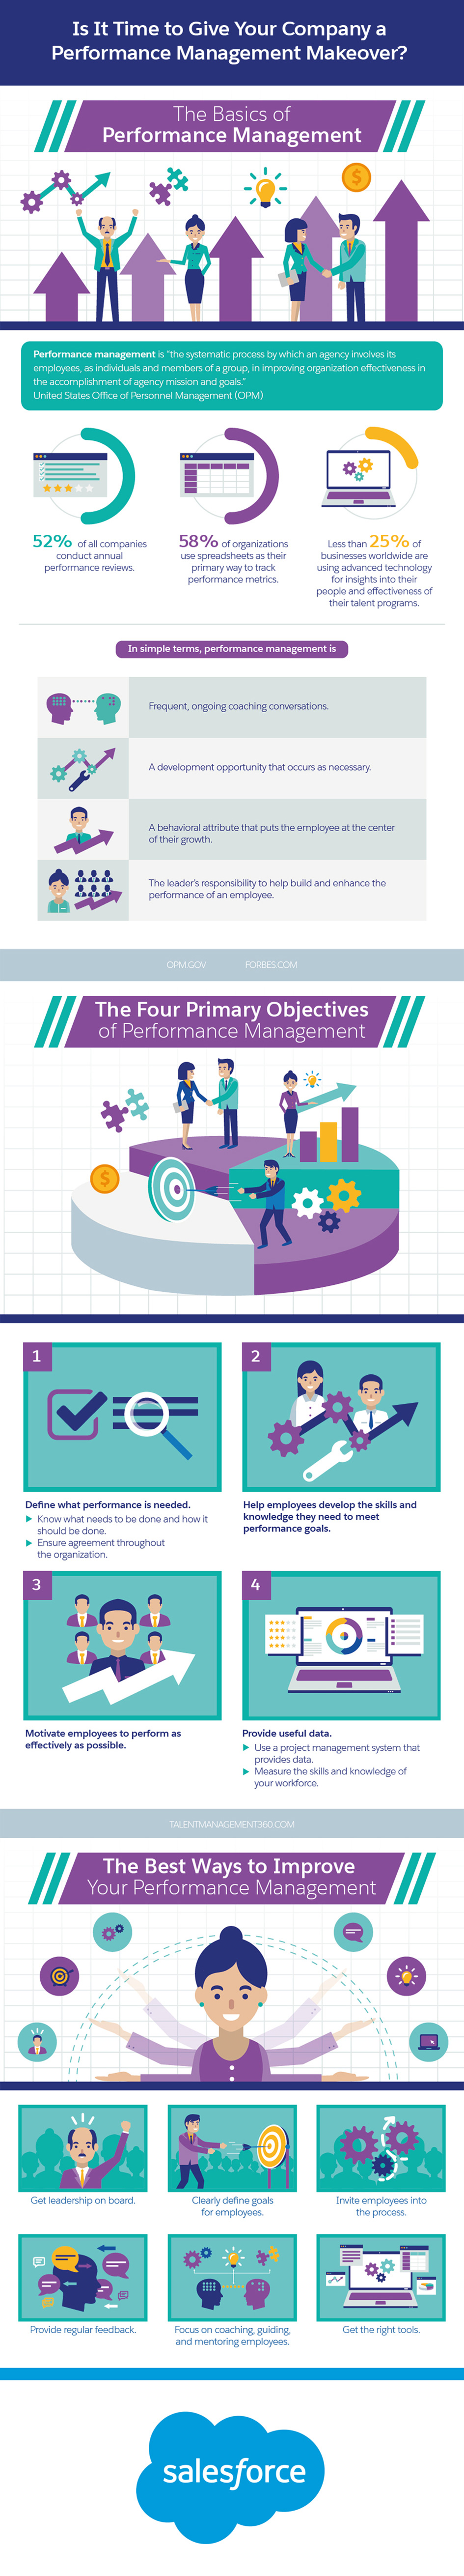 Is It Time to Give Your Company a Performance Management Makeover Infographic